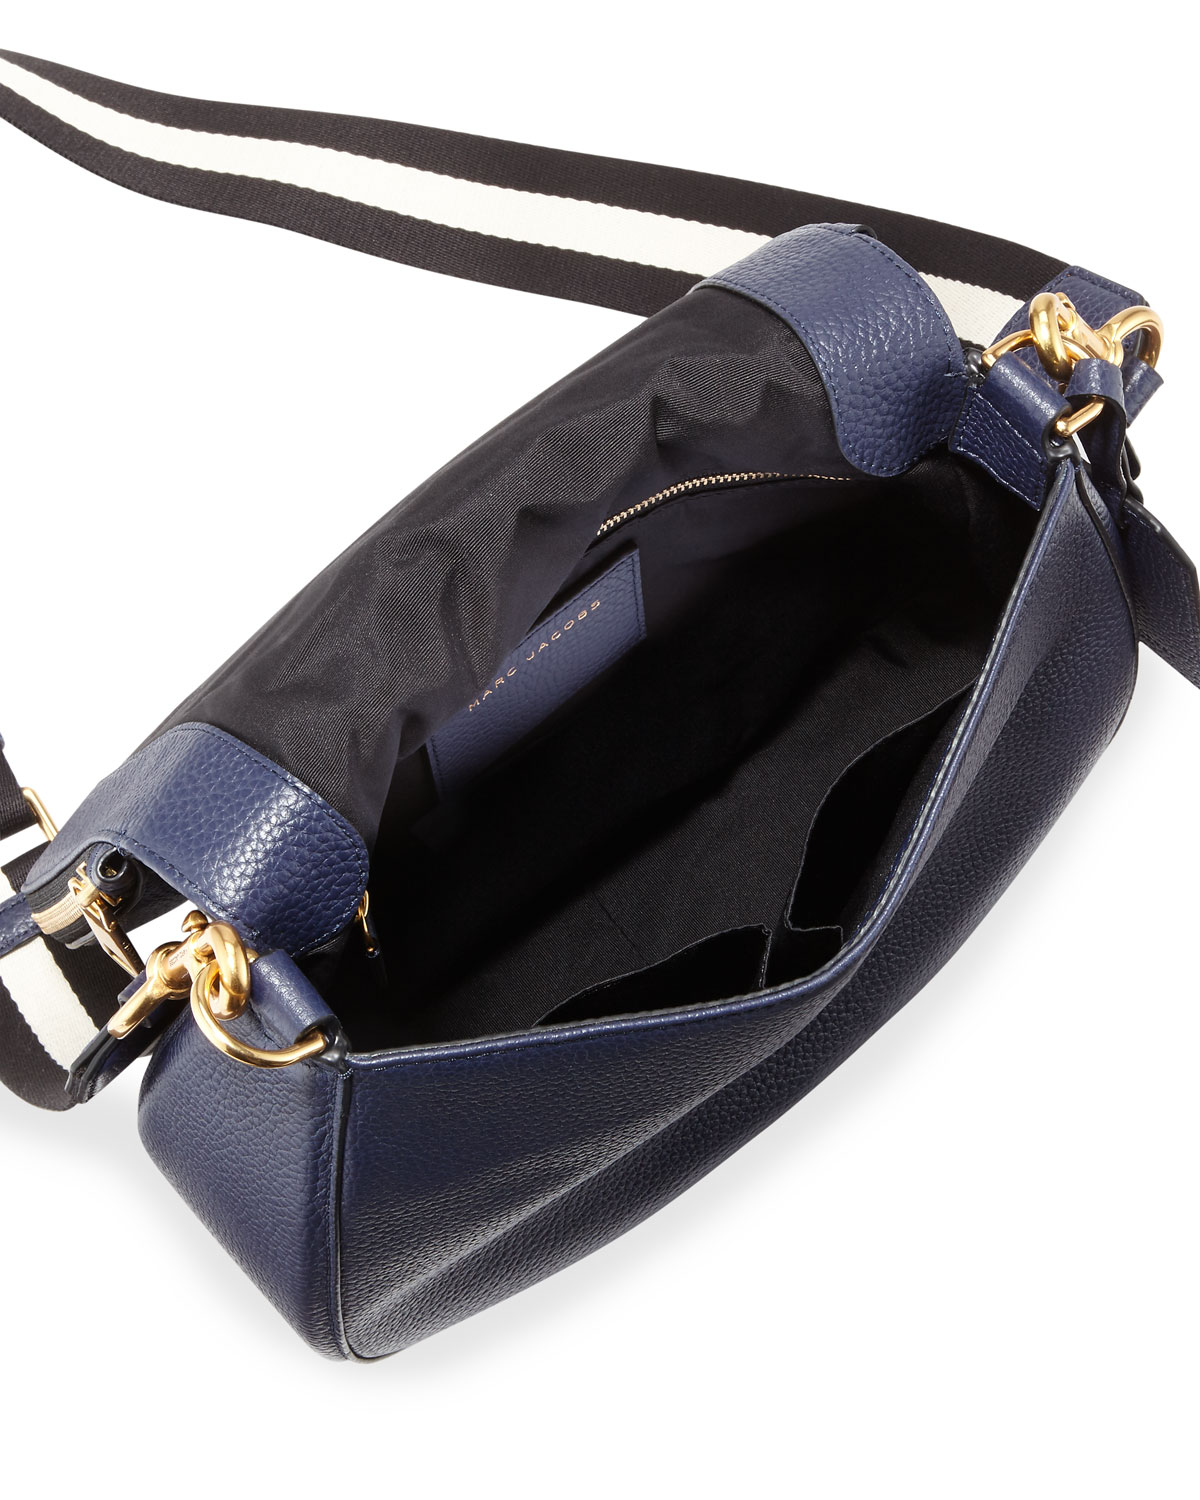 Marc By Jacobs Gotham Leather Saddle Bag Navy Neiman Marcus Tendencies Back Pack Arcus